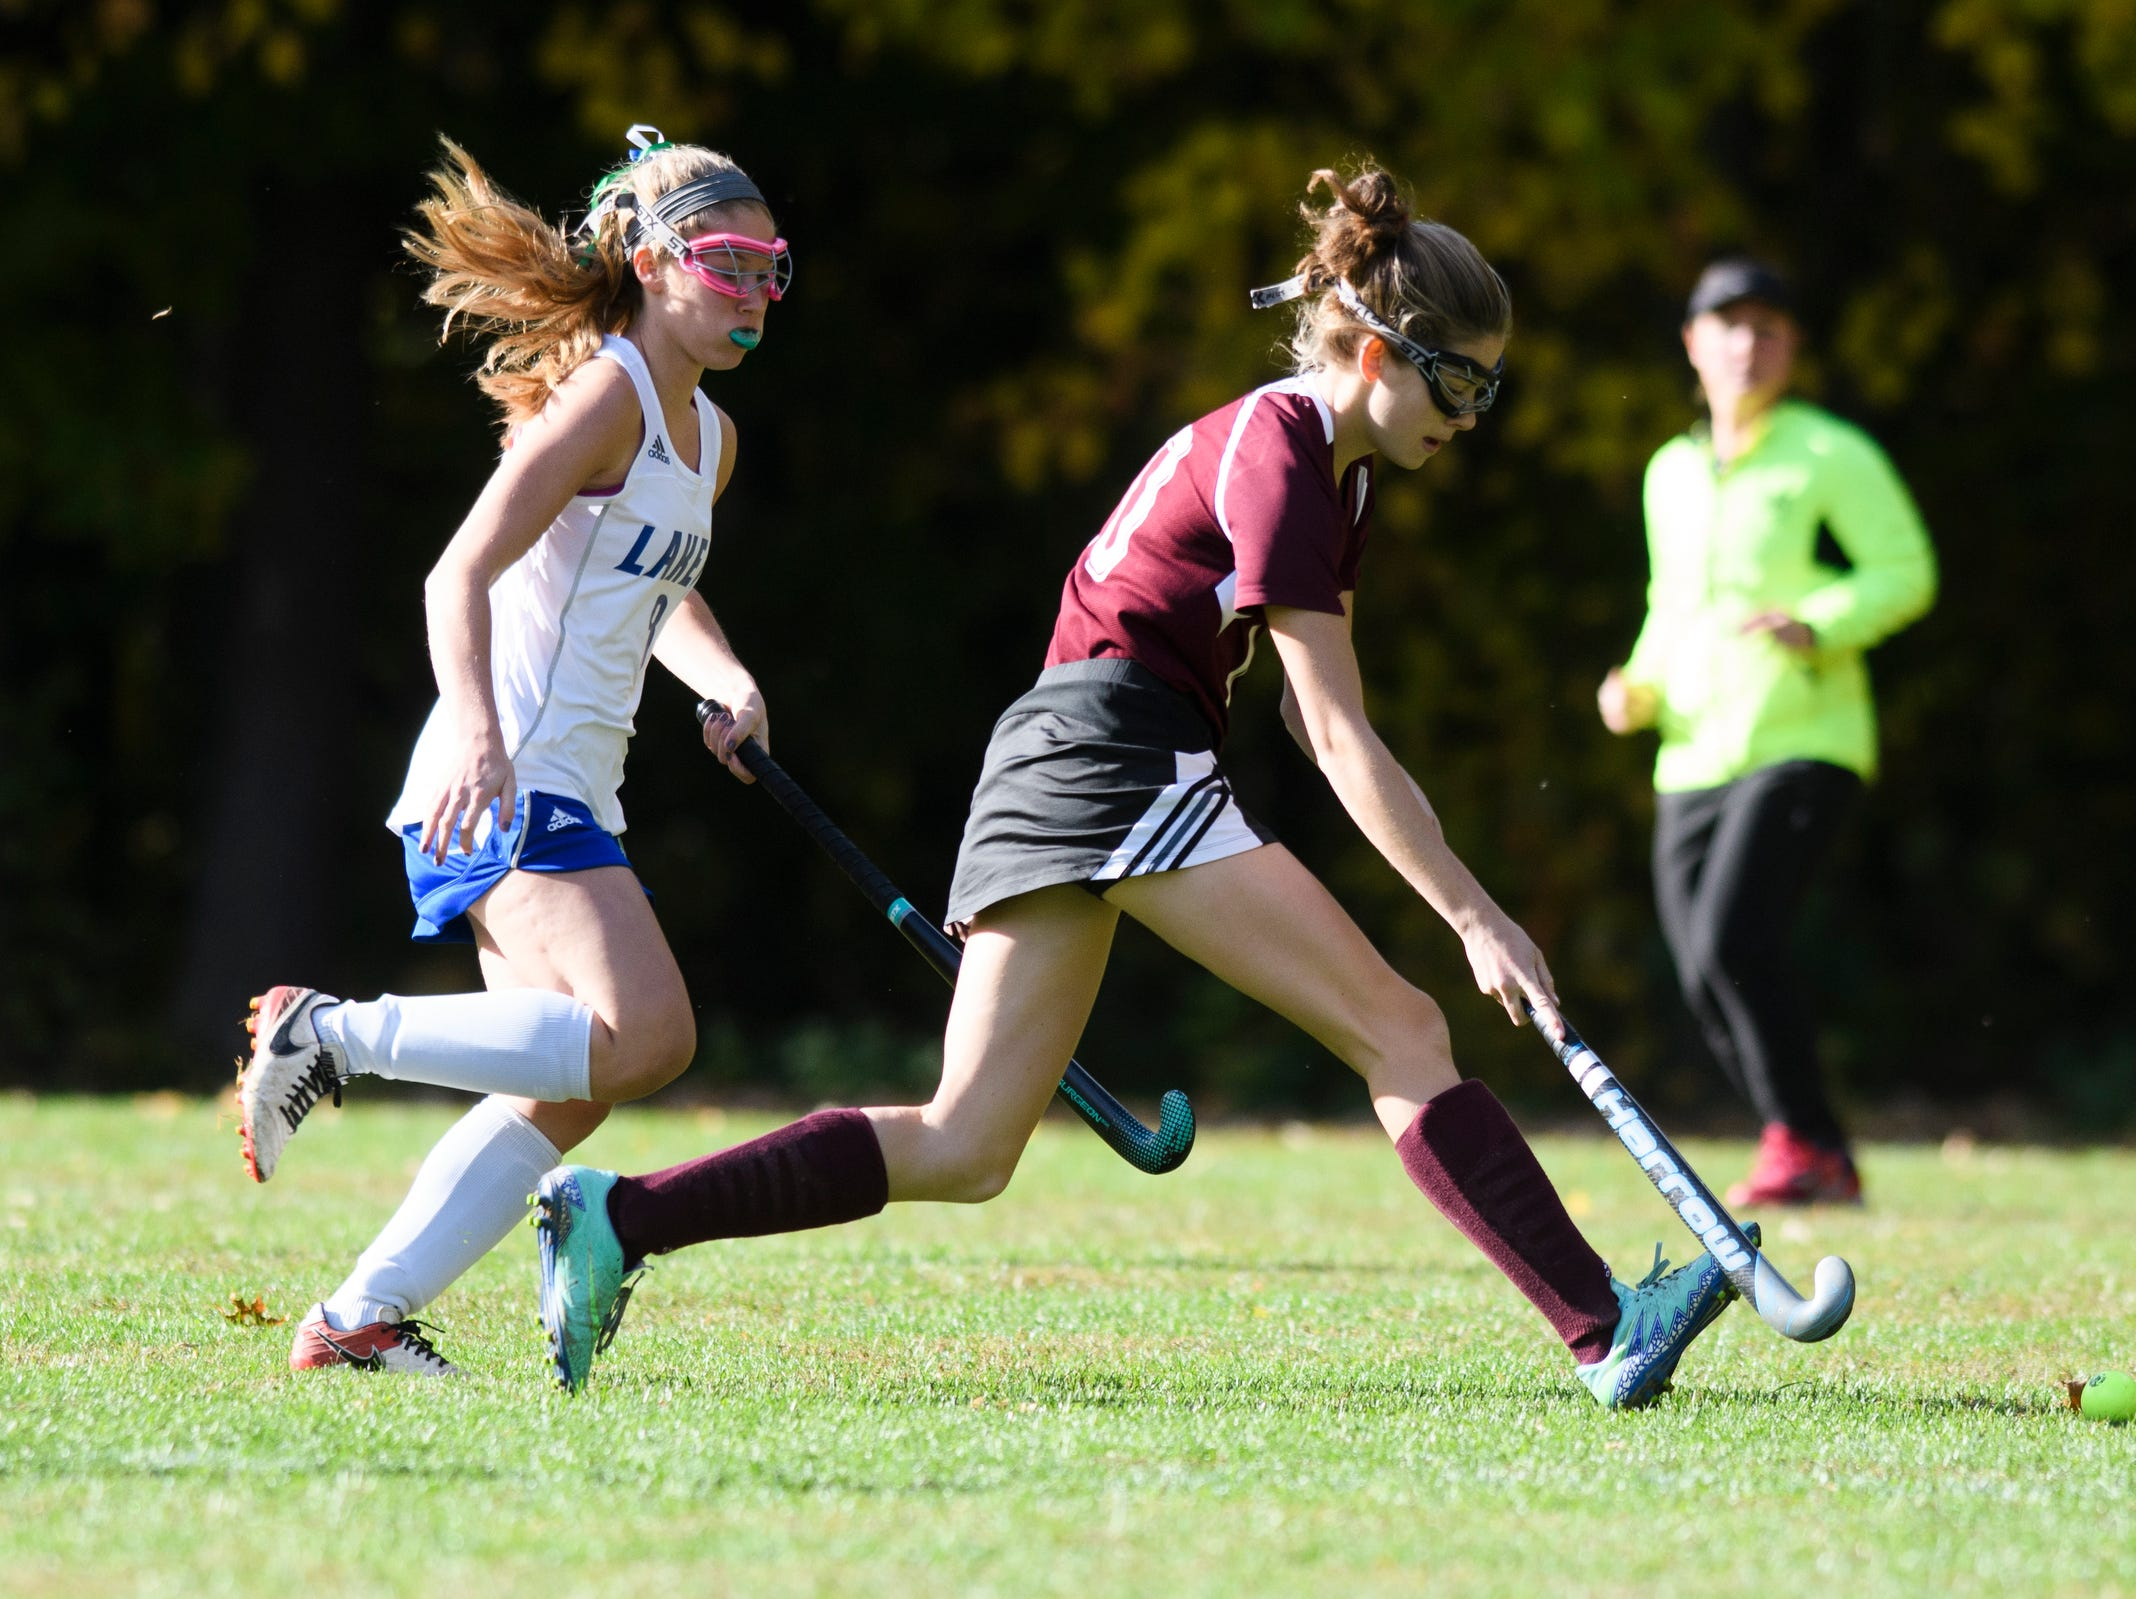 Mt. Abraham's Ava Konczal (10) runs down the field with the ball past Colchester's Brooke Barrows (8) during the field hockey game between Mount Abraham and Colchester at Colchester High School on Saturday morning October 20, 2018 in Colchester.